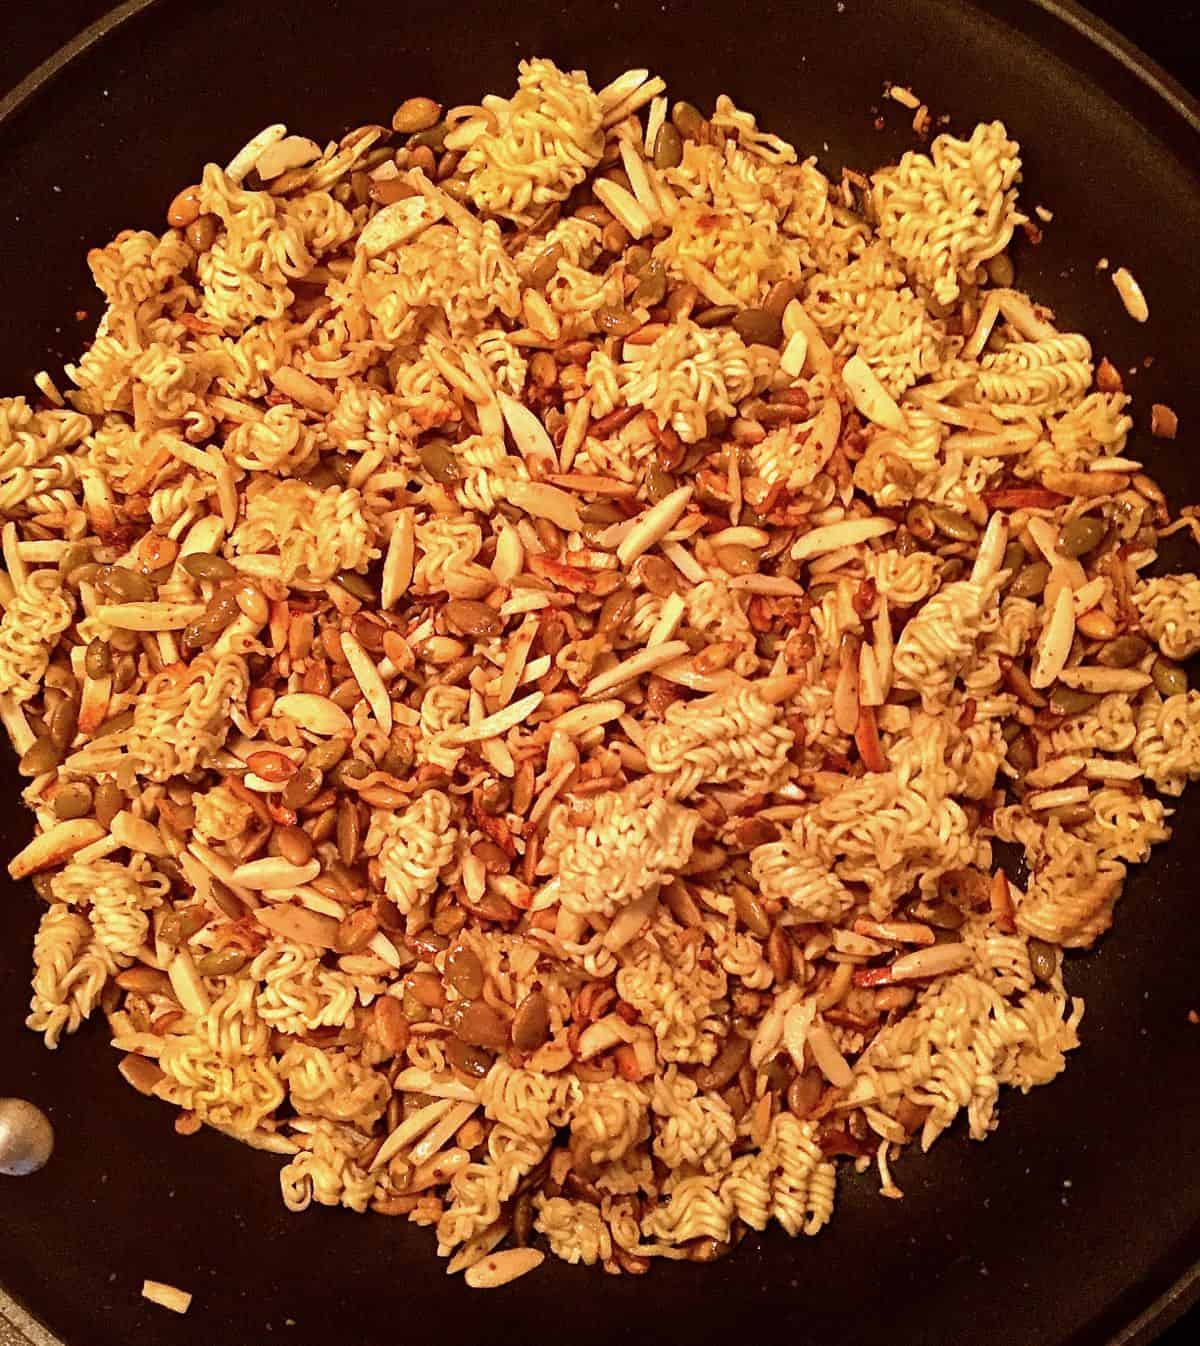 Crushed ramen noodles, slivered almonds and sunflower seeds in a skillet.